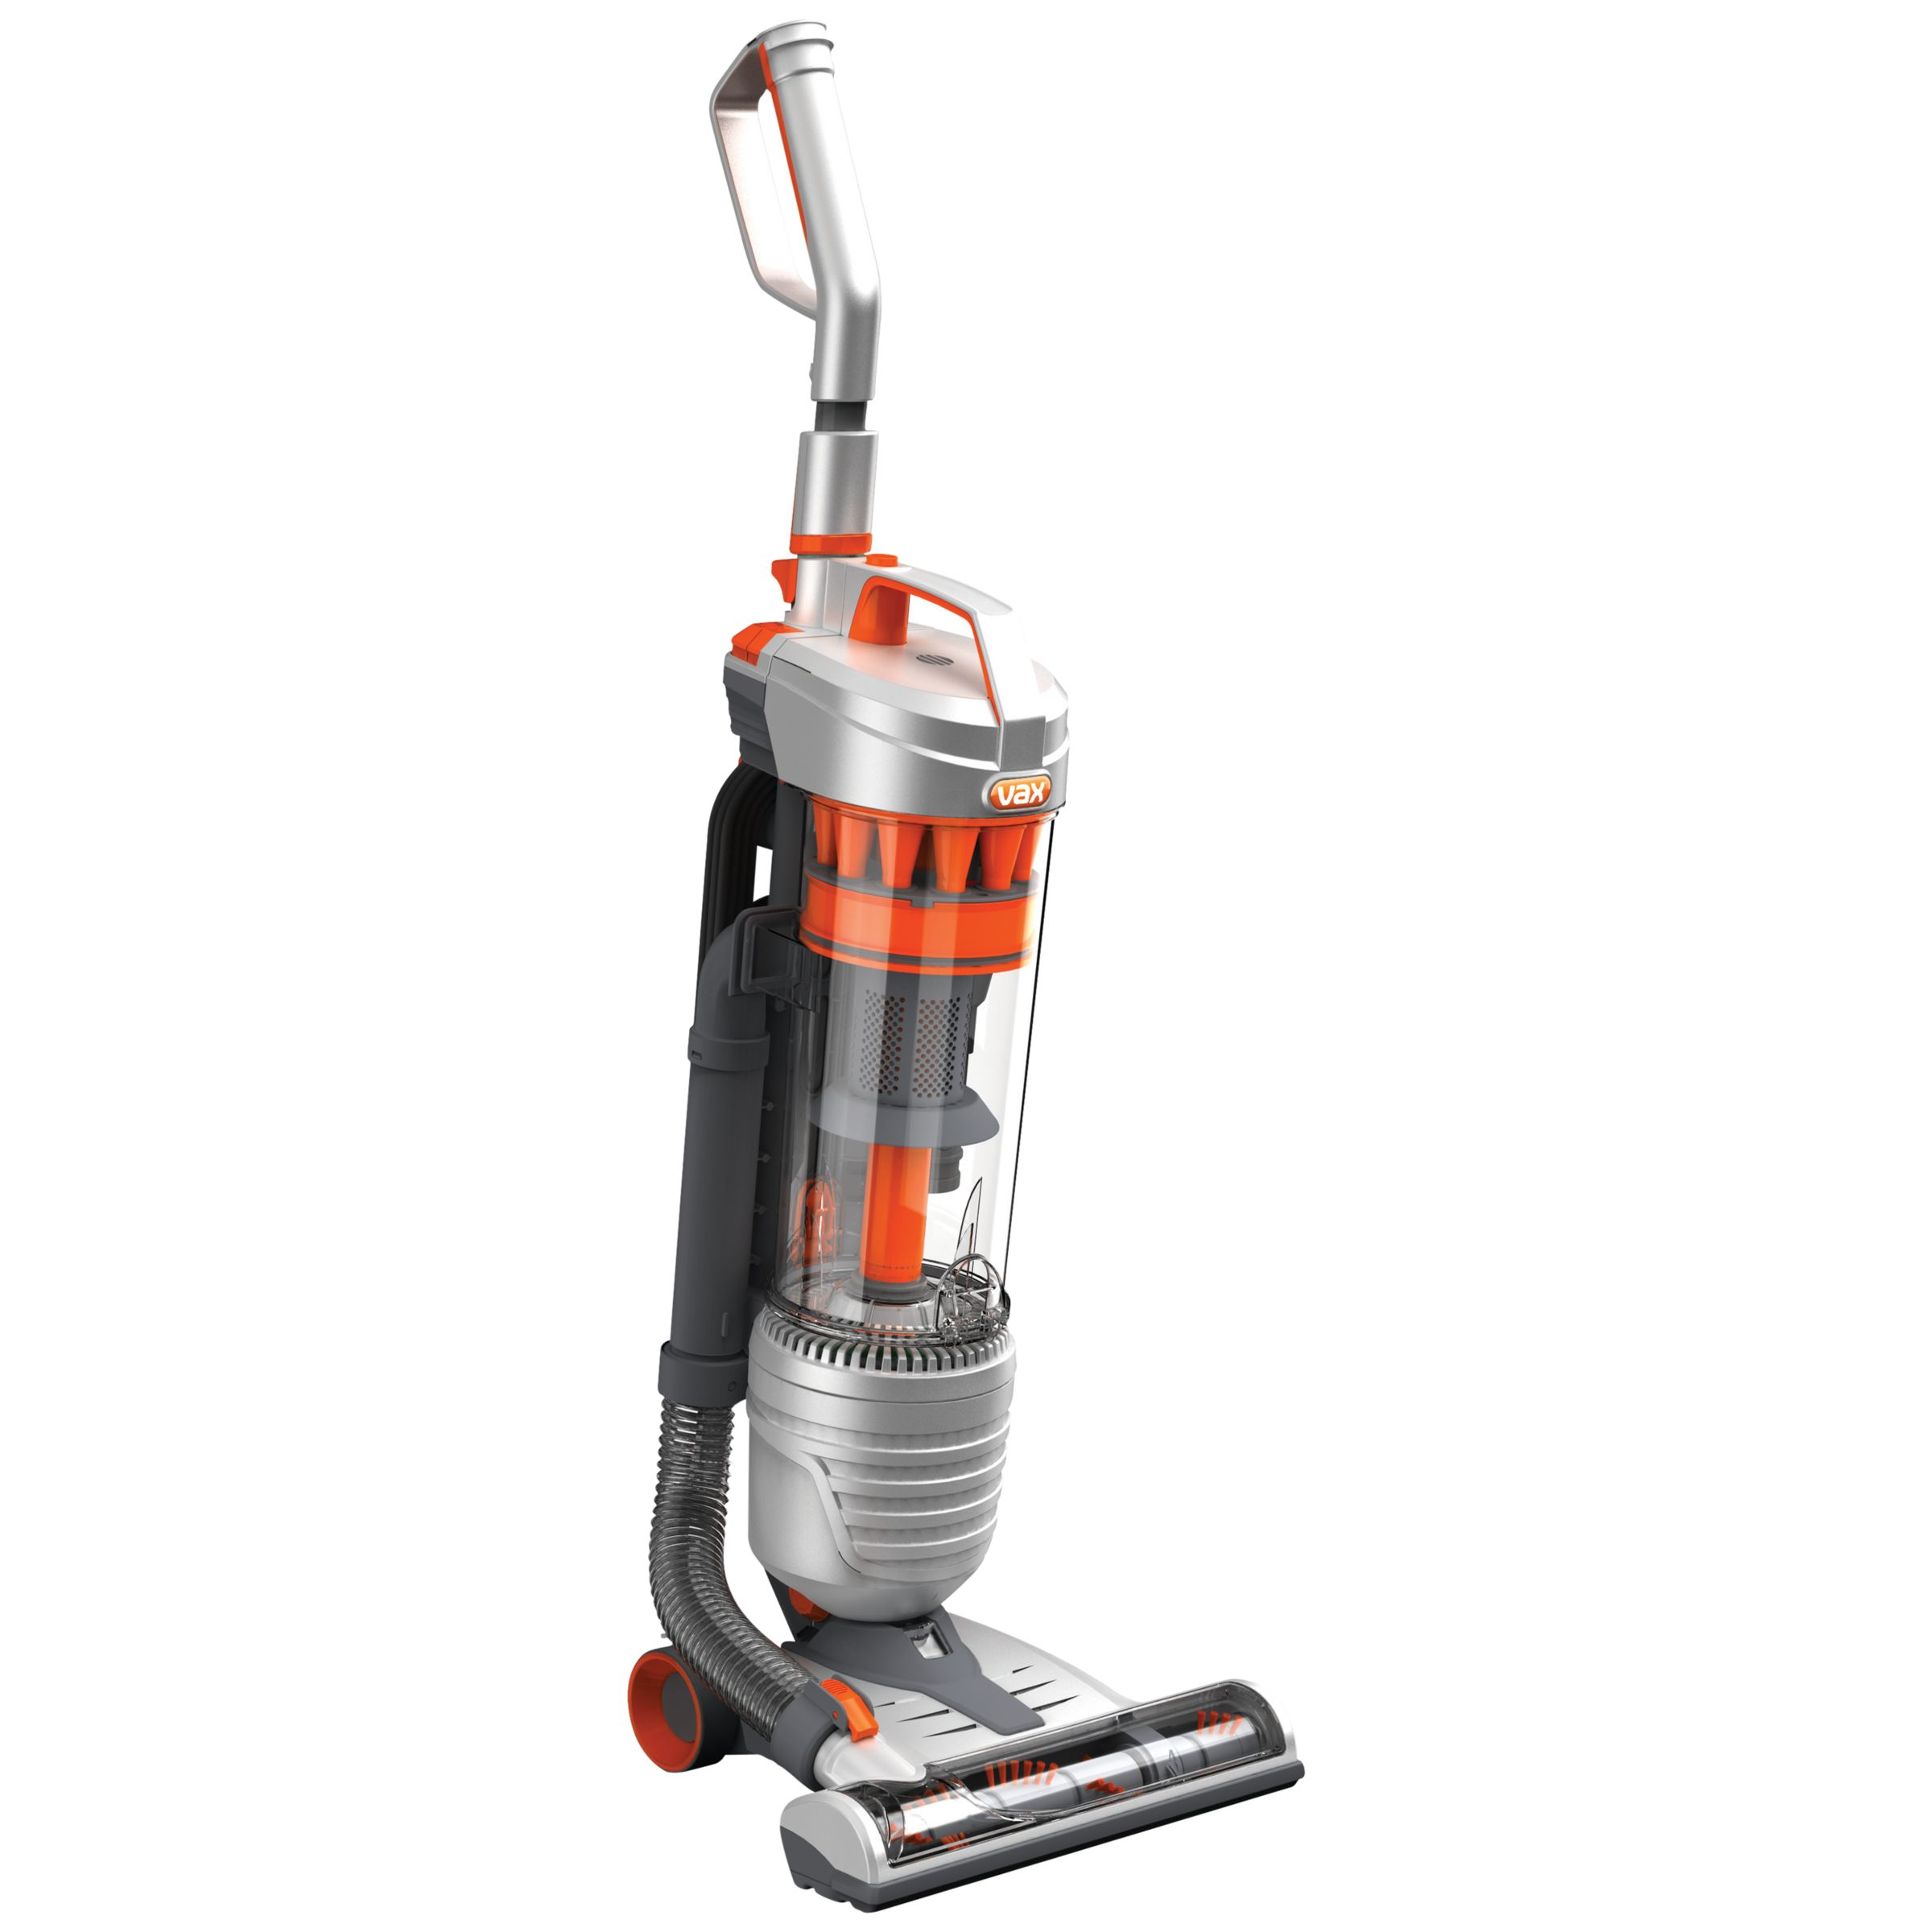 Vax U88-AM-B Air³ Upright Vacuum Cleaner